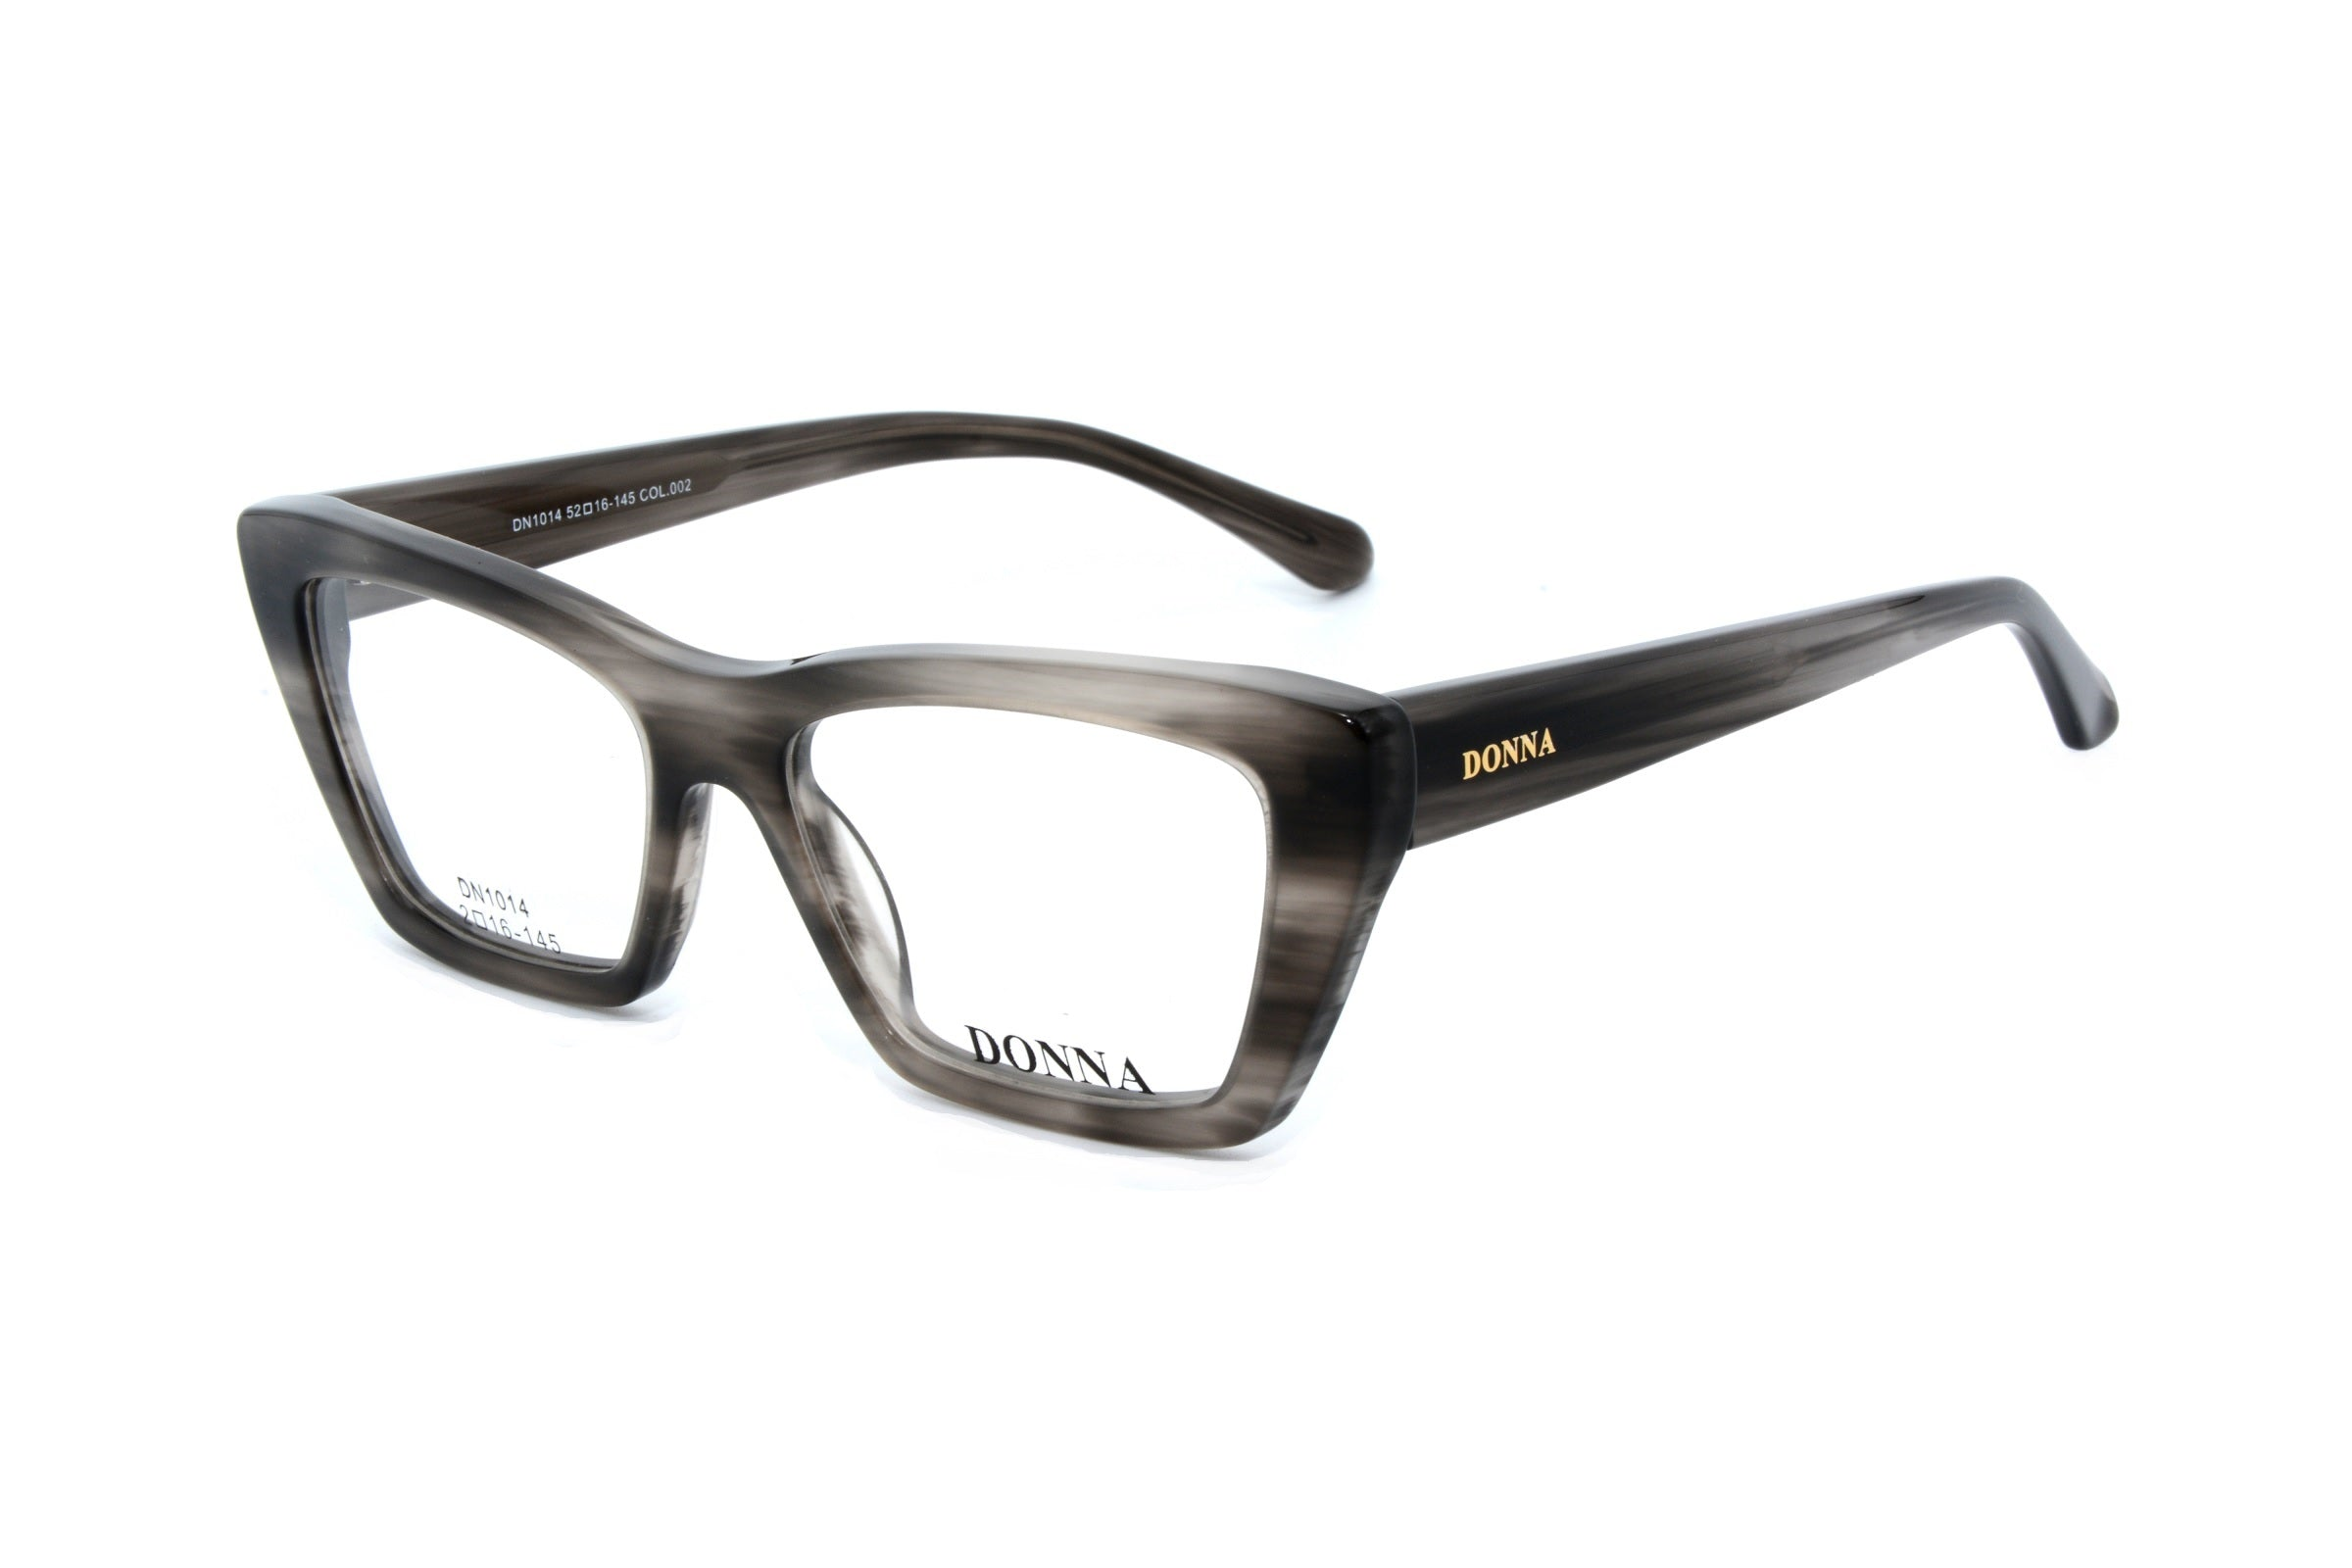 Donna eyewear 1014, C002 - Optics Trading